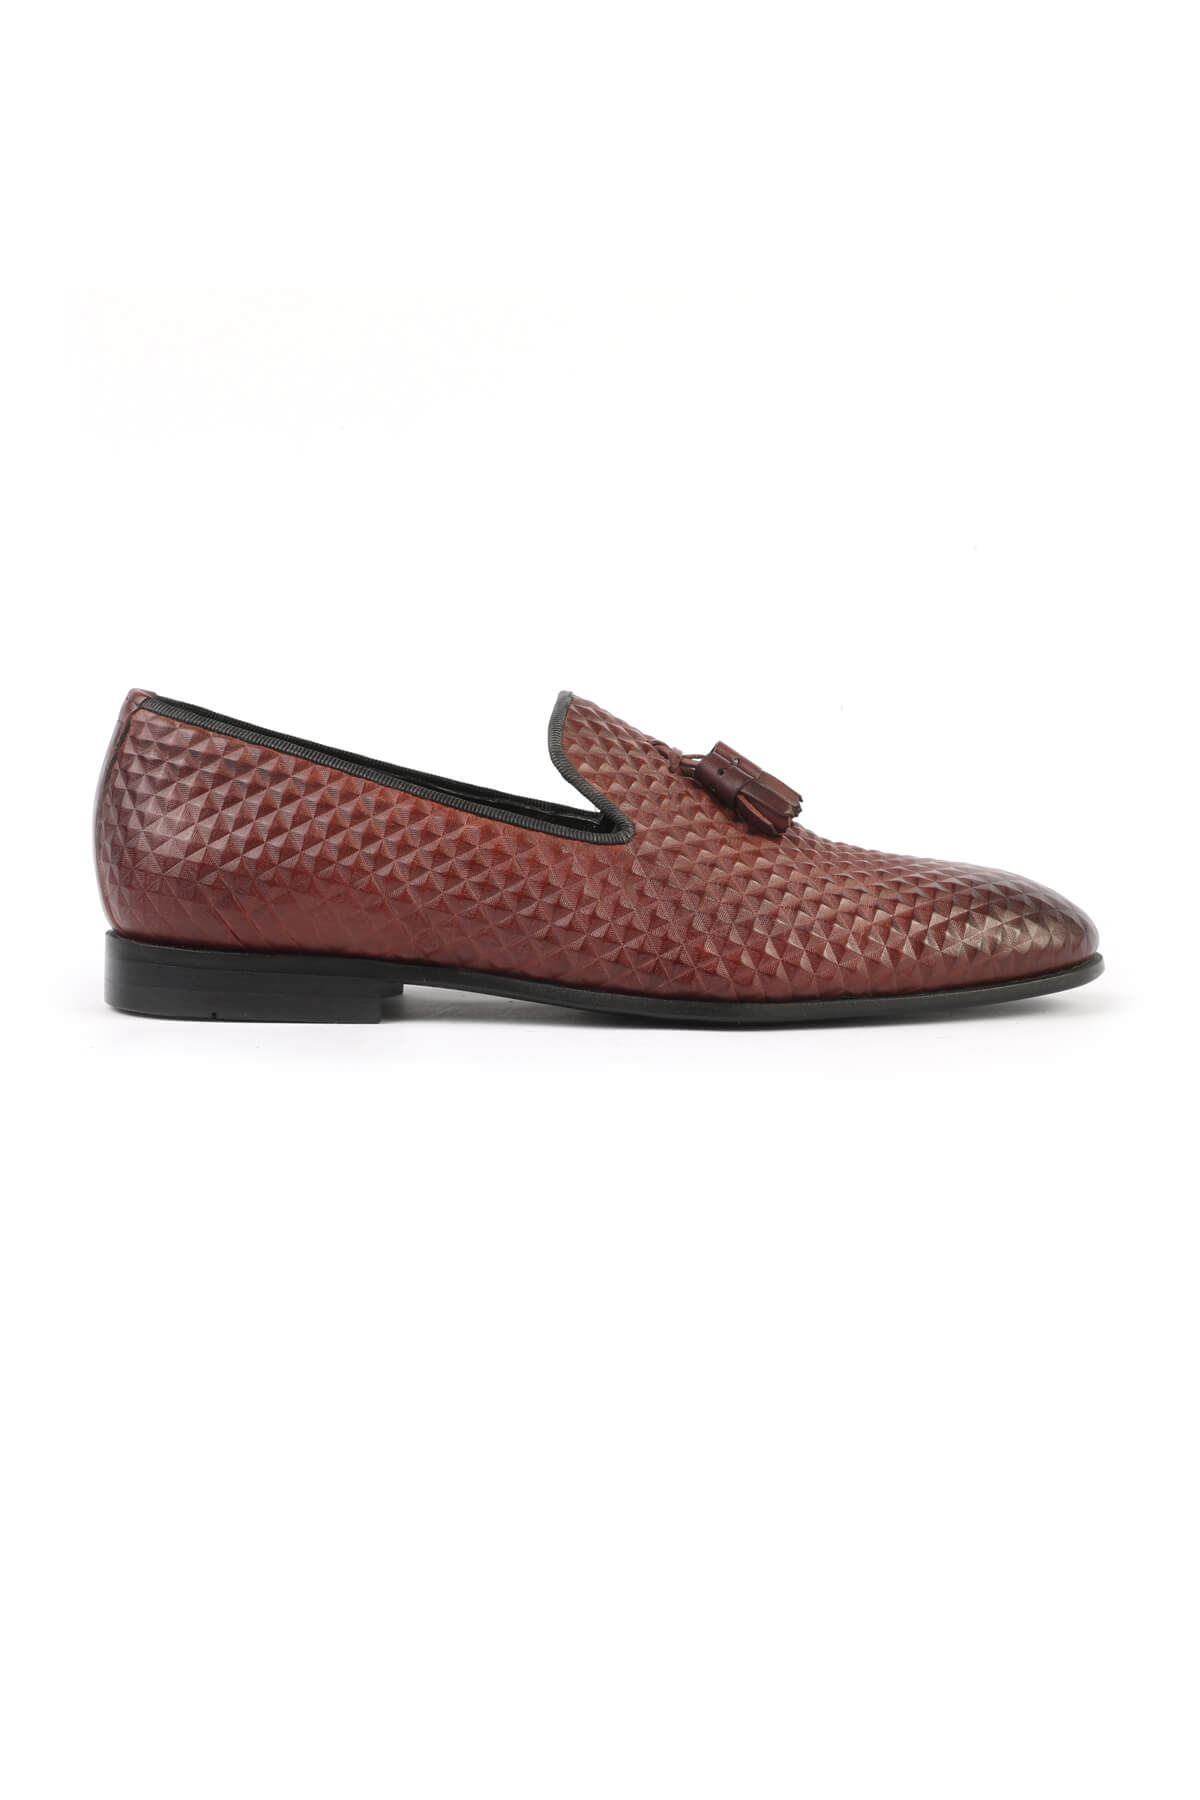 Libero 2830 Claret Red Loafer Shoes